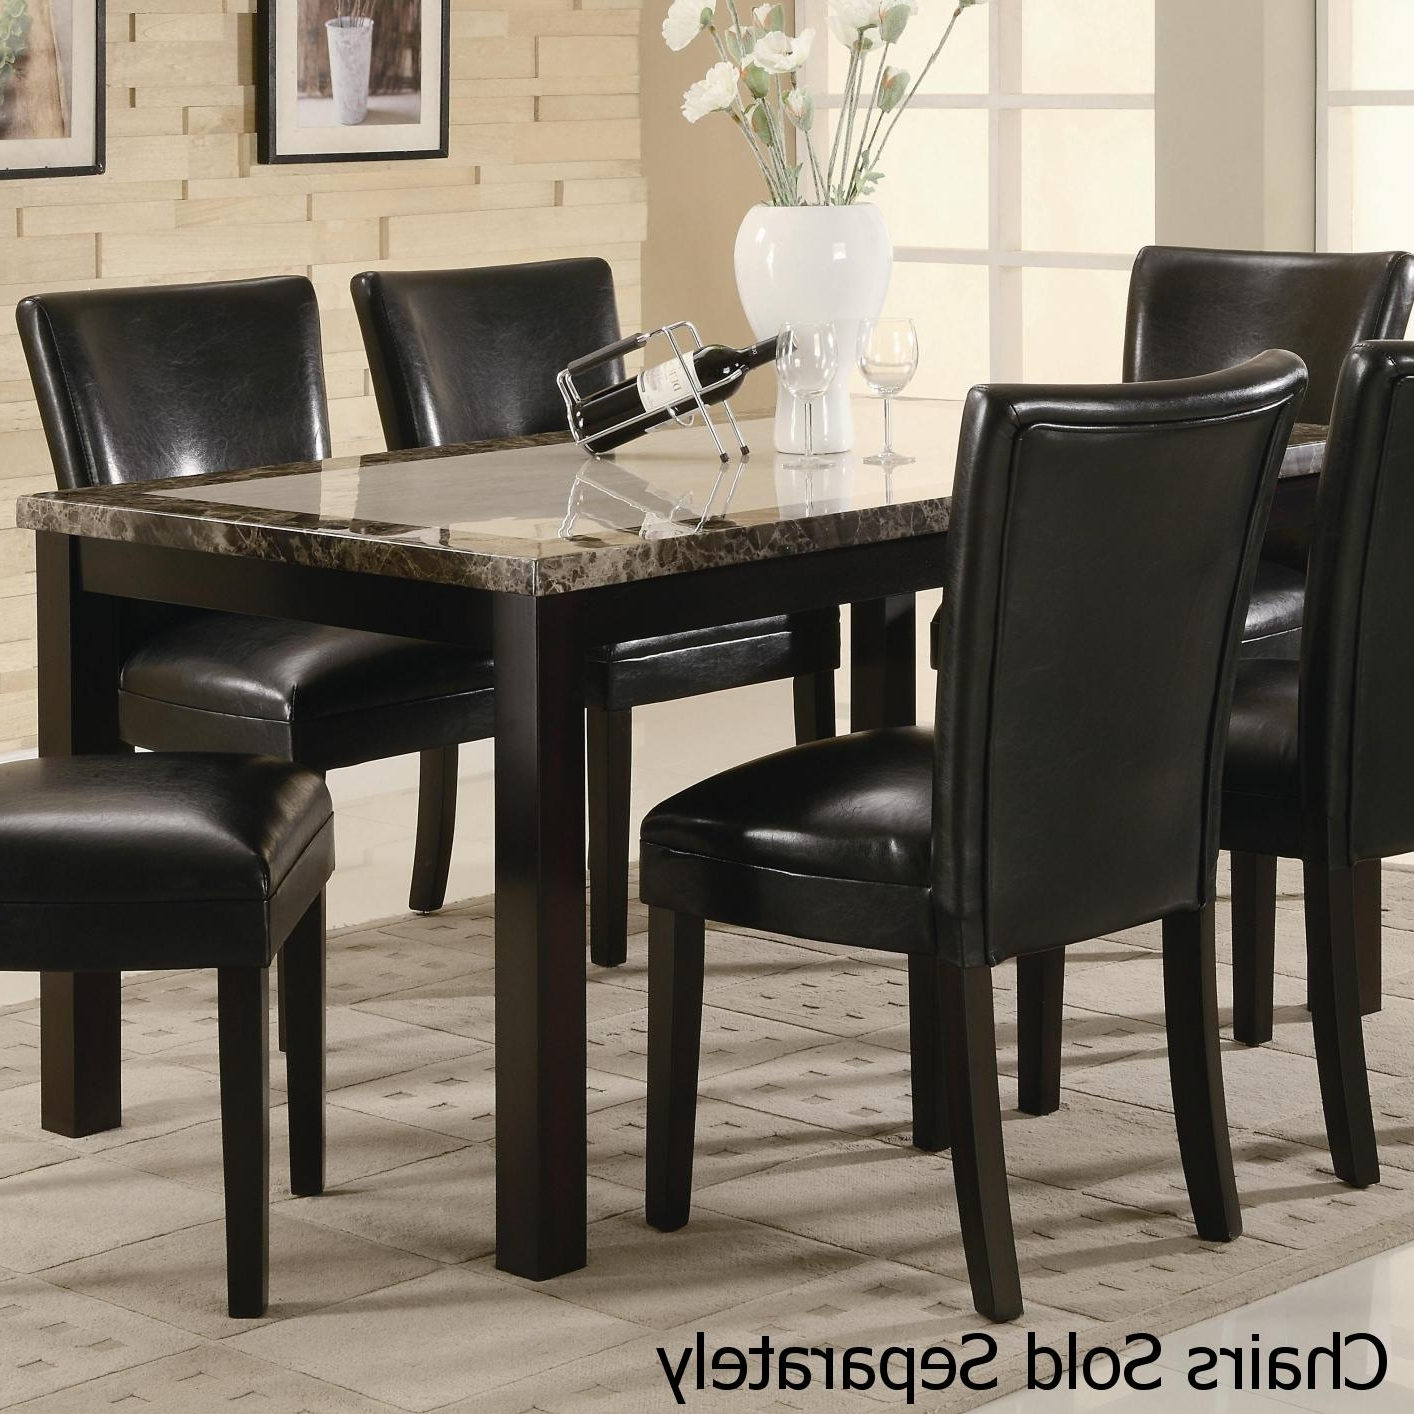 Most Recent Dark Brown Wood Dining Tables Intended For Brown Wood Dining Table – Steal A Sofa Furniture Outlet Los Angeles Ca (View 19 of 25)